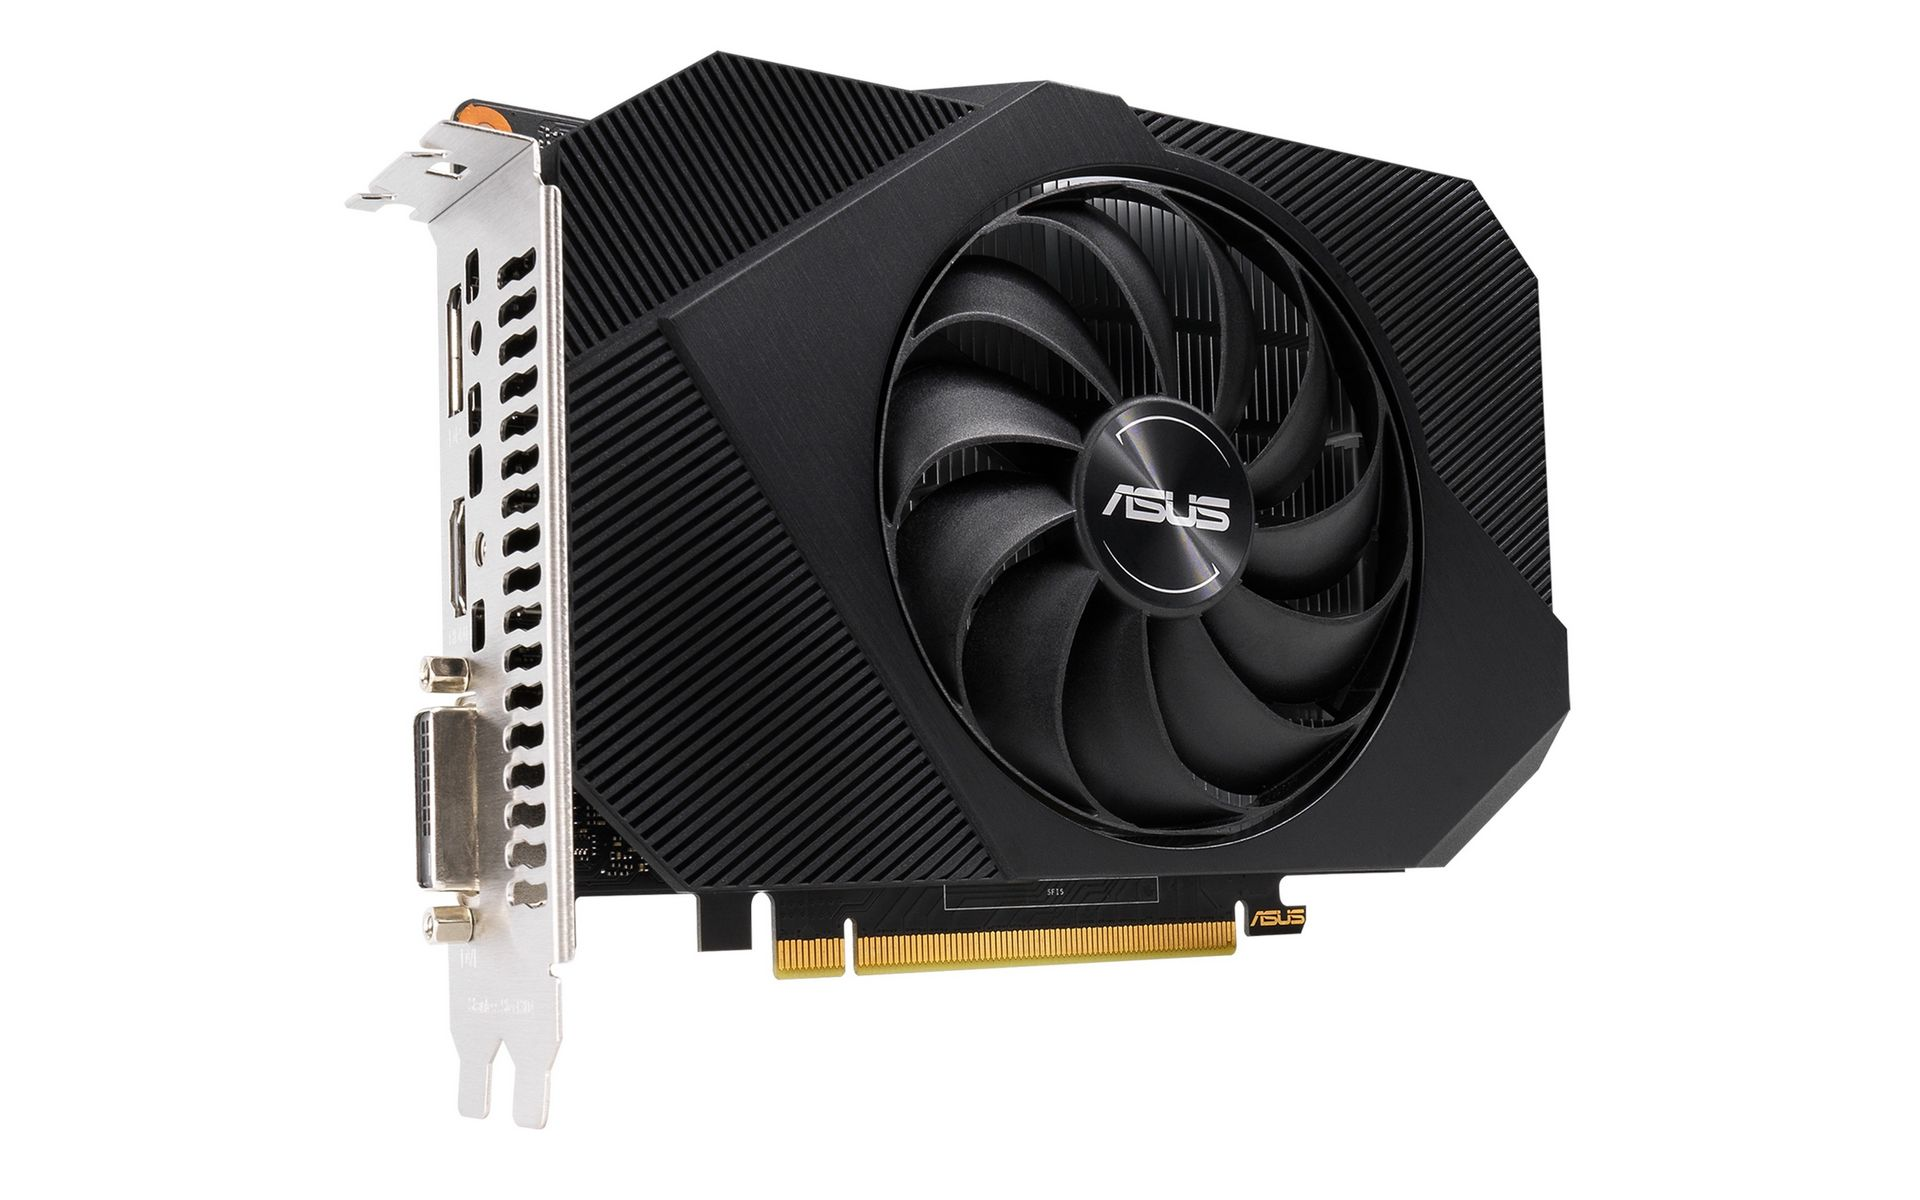 Card đồ họa ASUS Phoenix GeForce GTX 1650 OC edition 4GB GDDR6